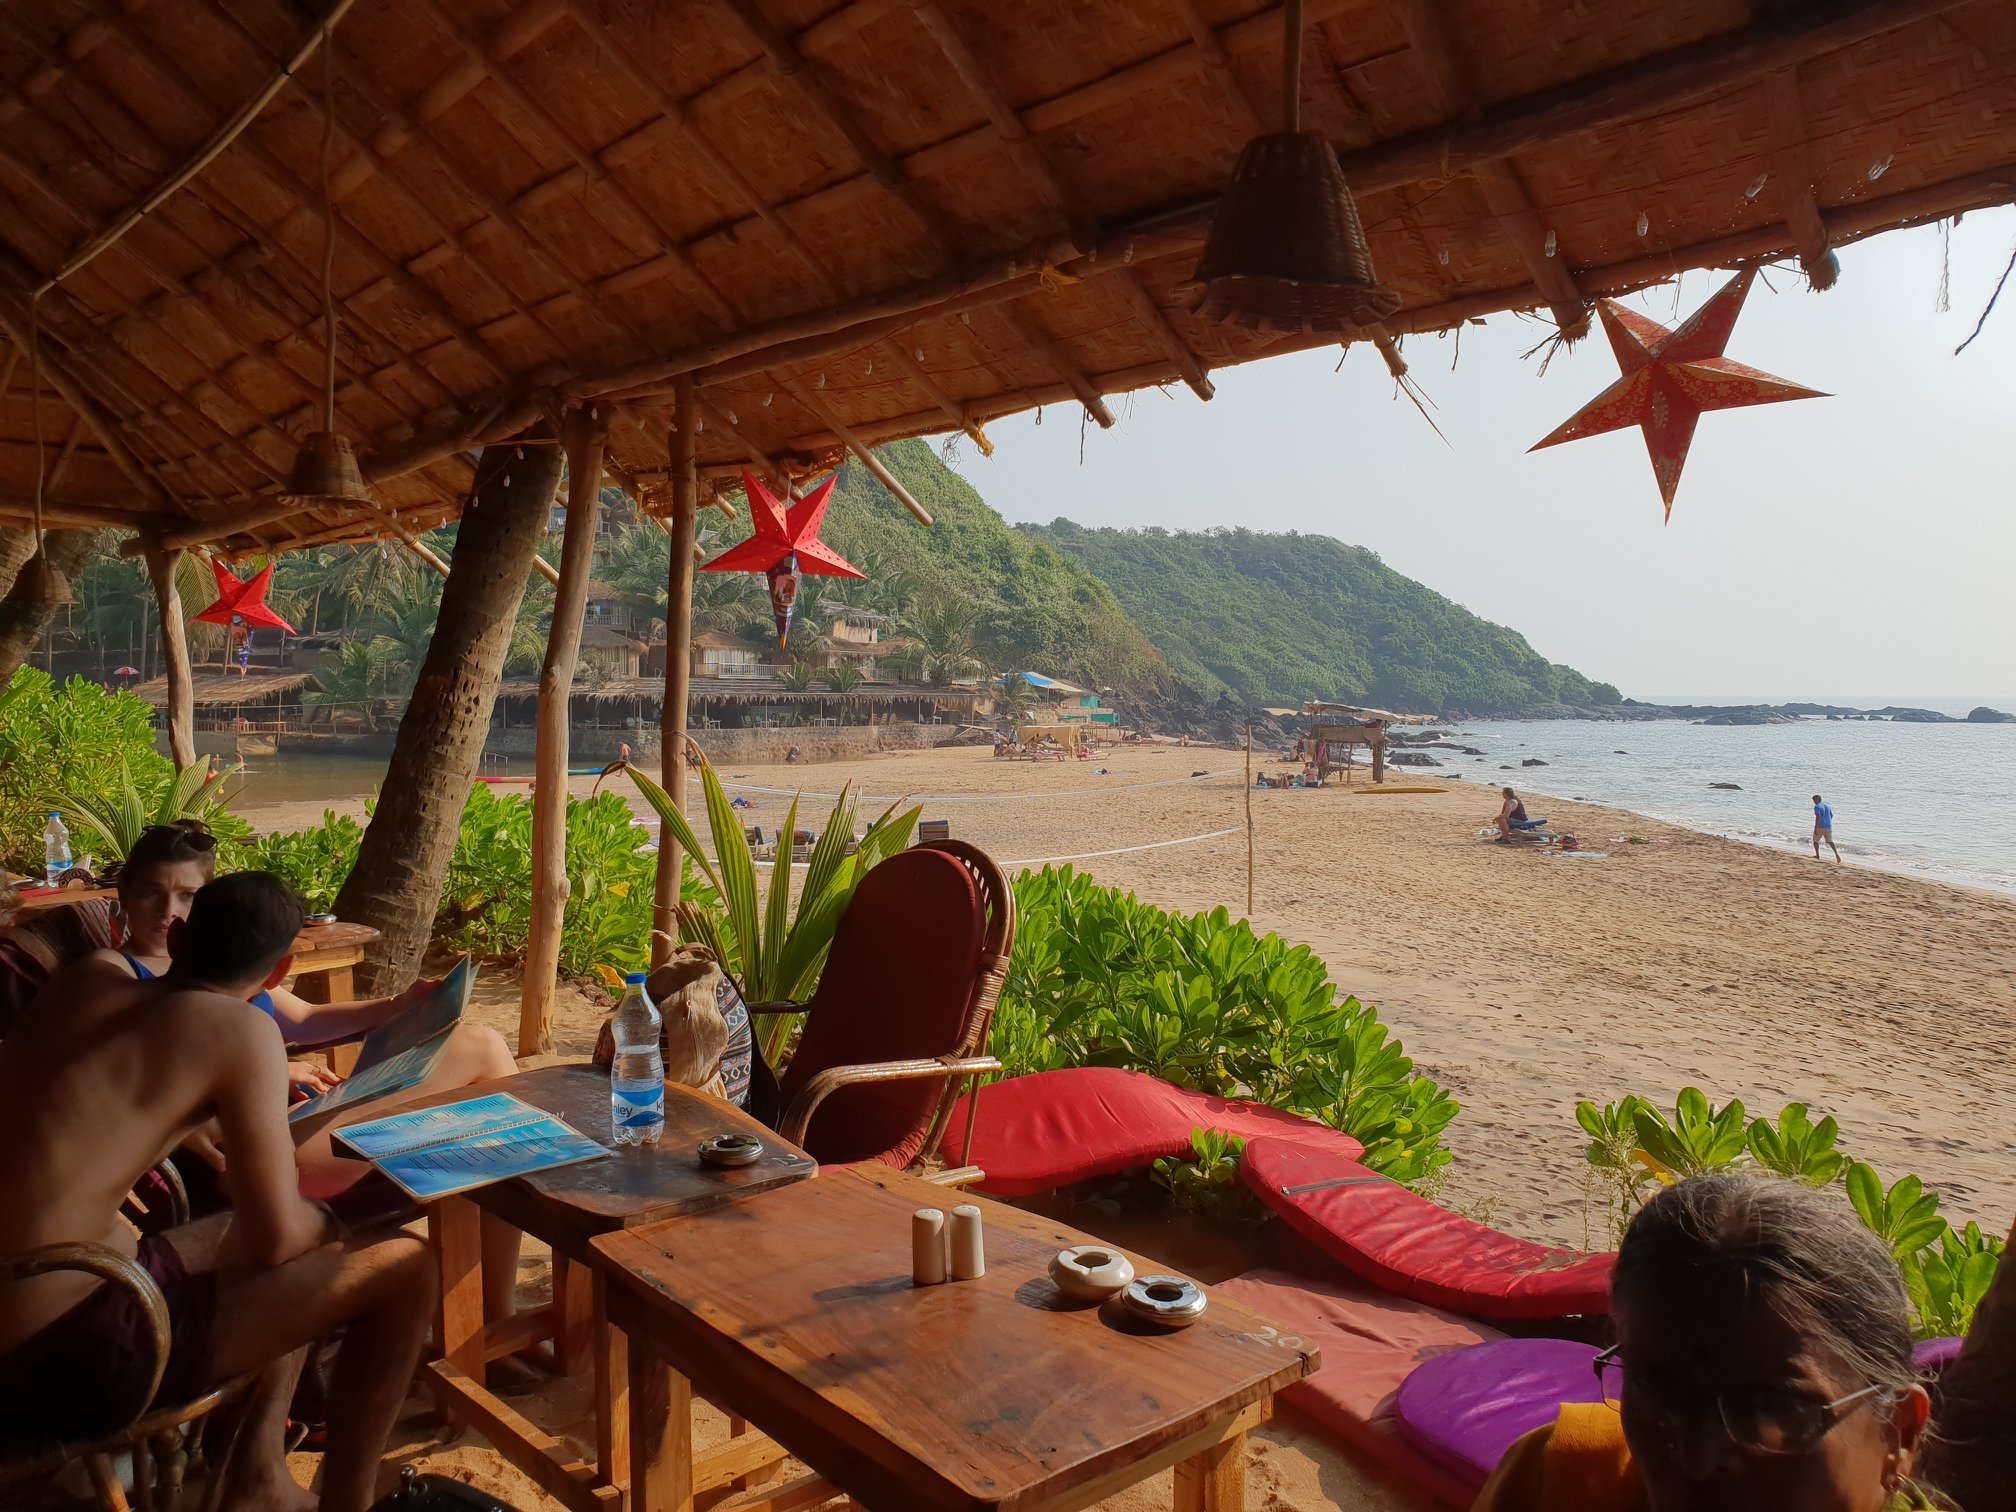 Cola Beach- Stunning Beach and Sweet Water Lagoon by the Hills in South Goa